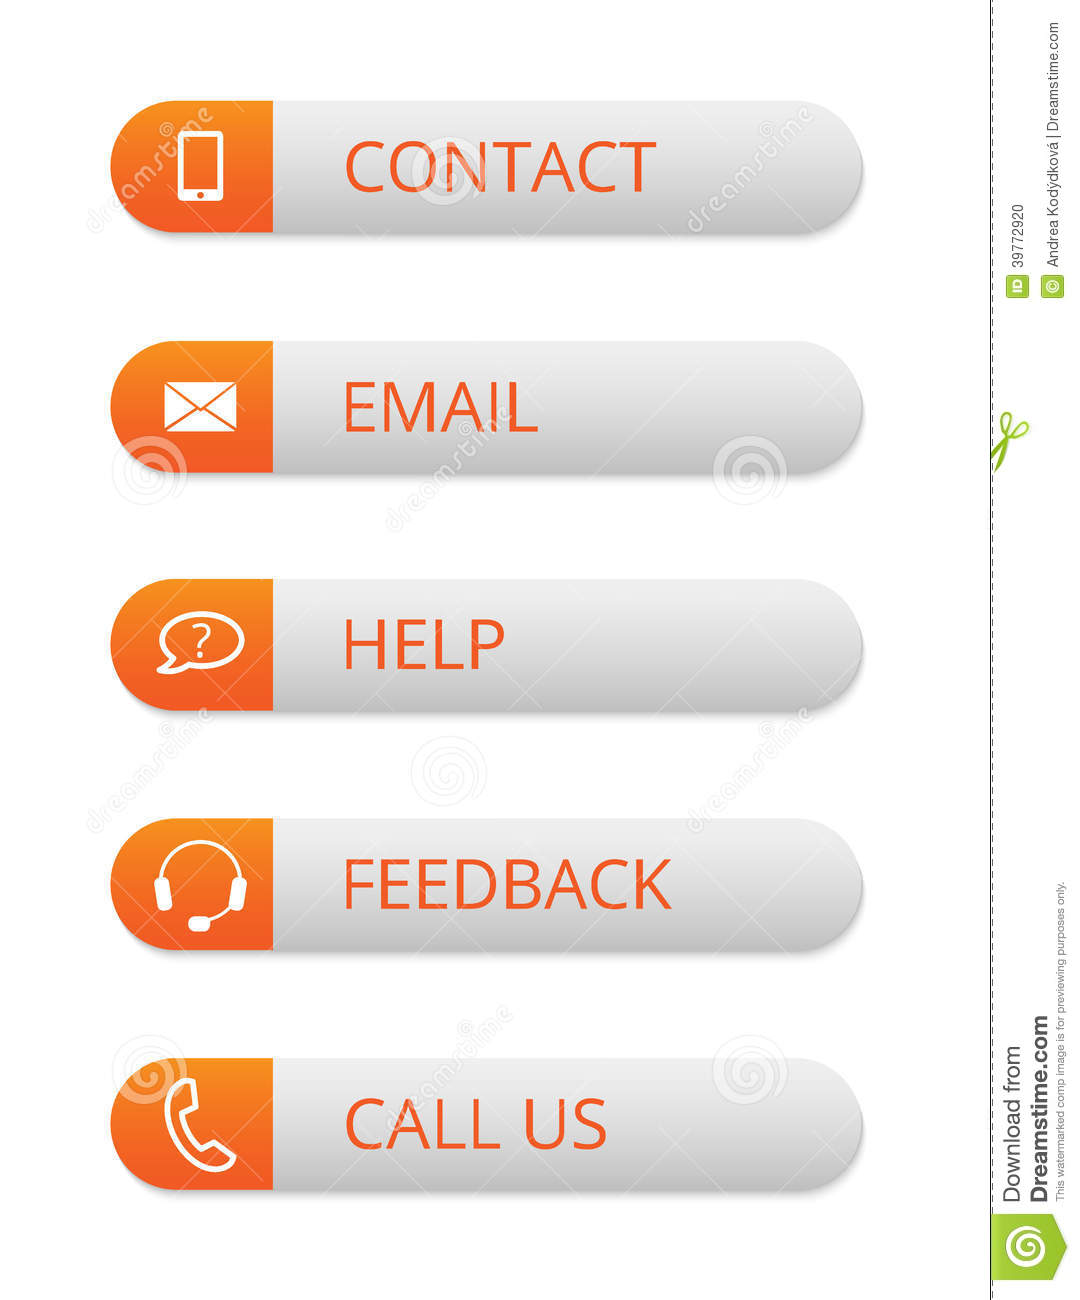 Contact Buttons For Pictures 69